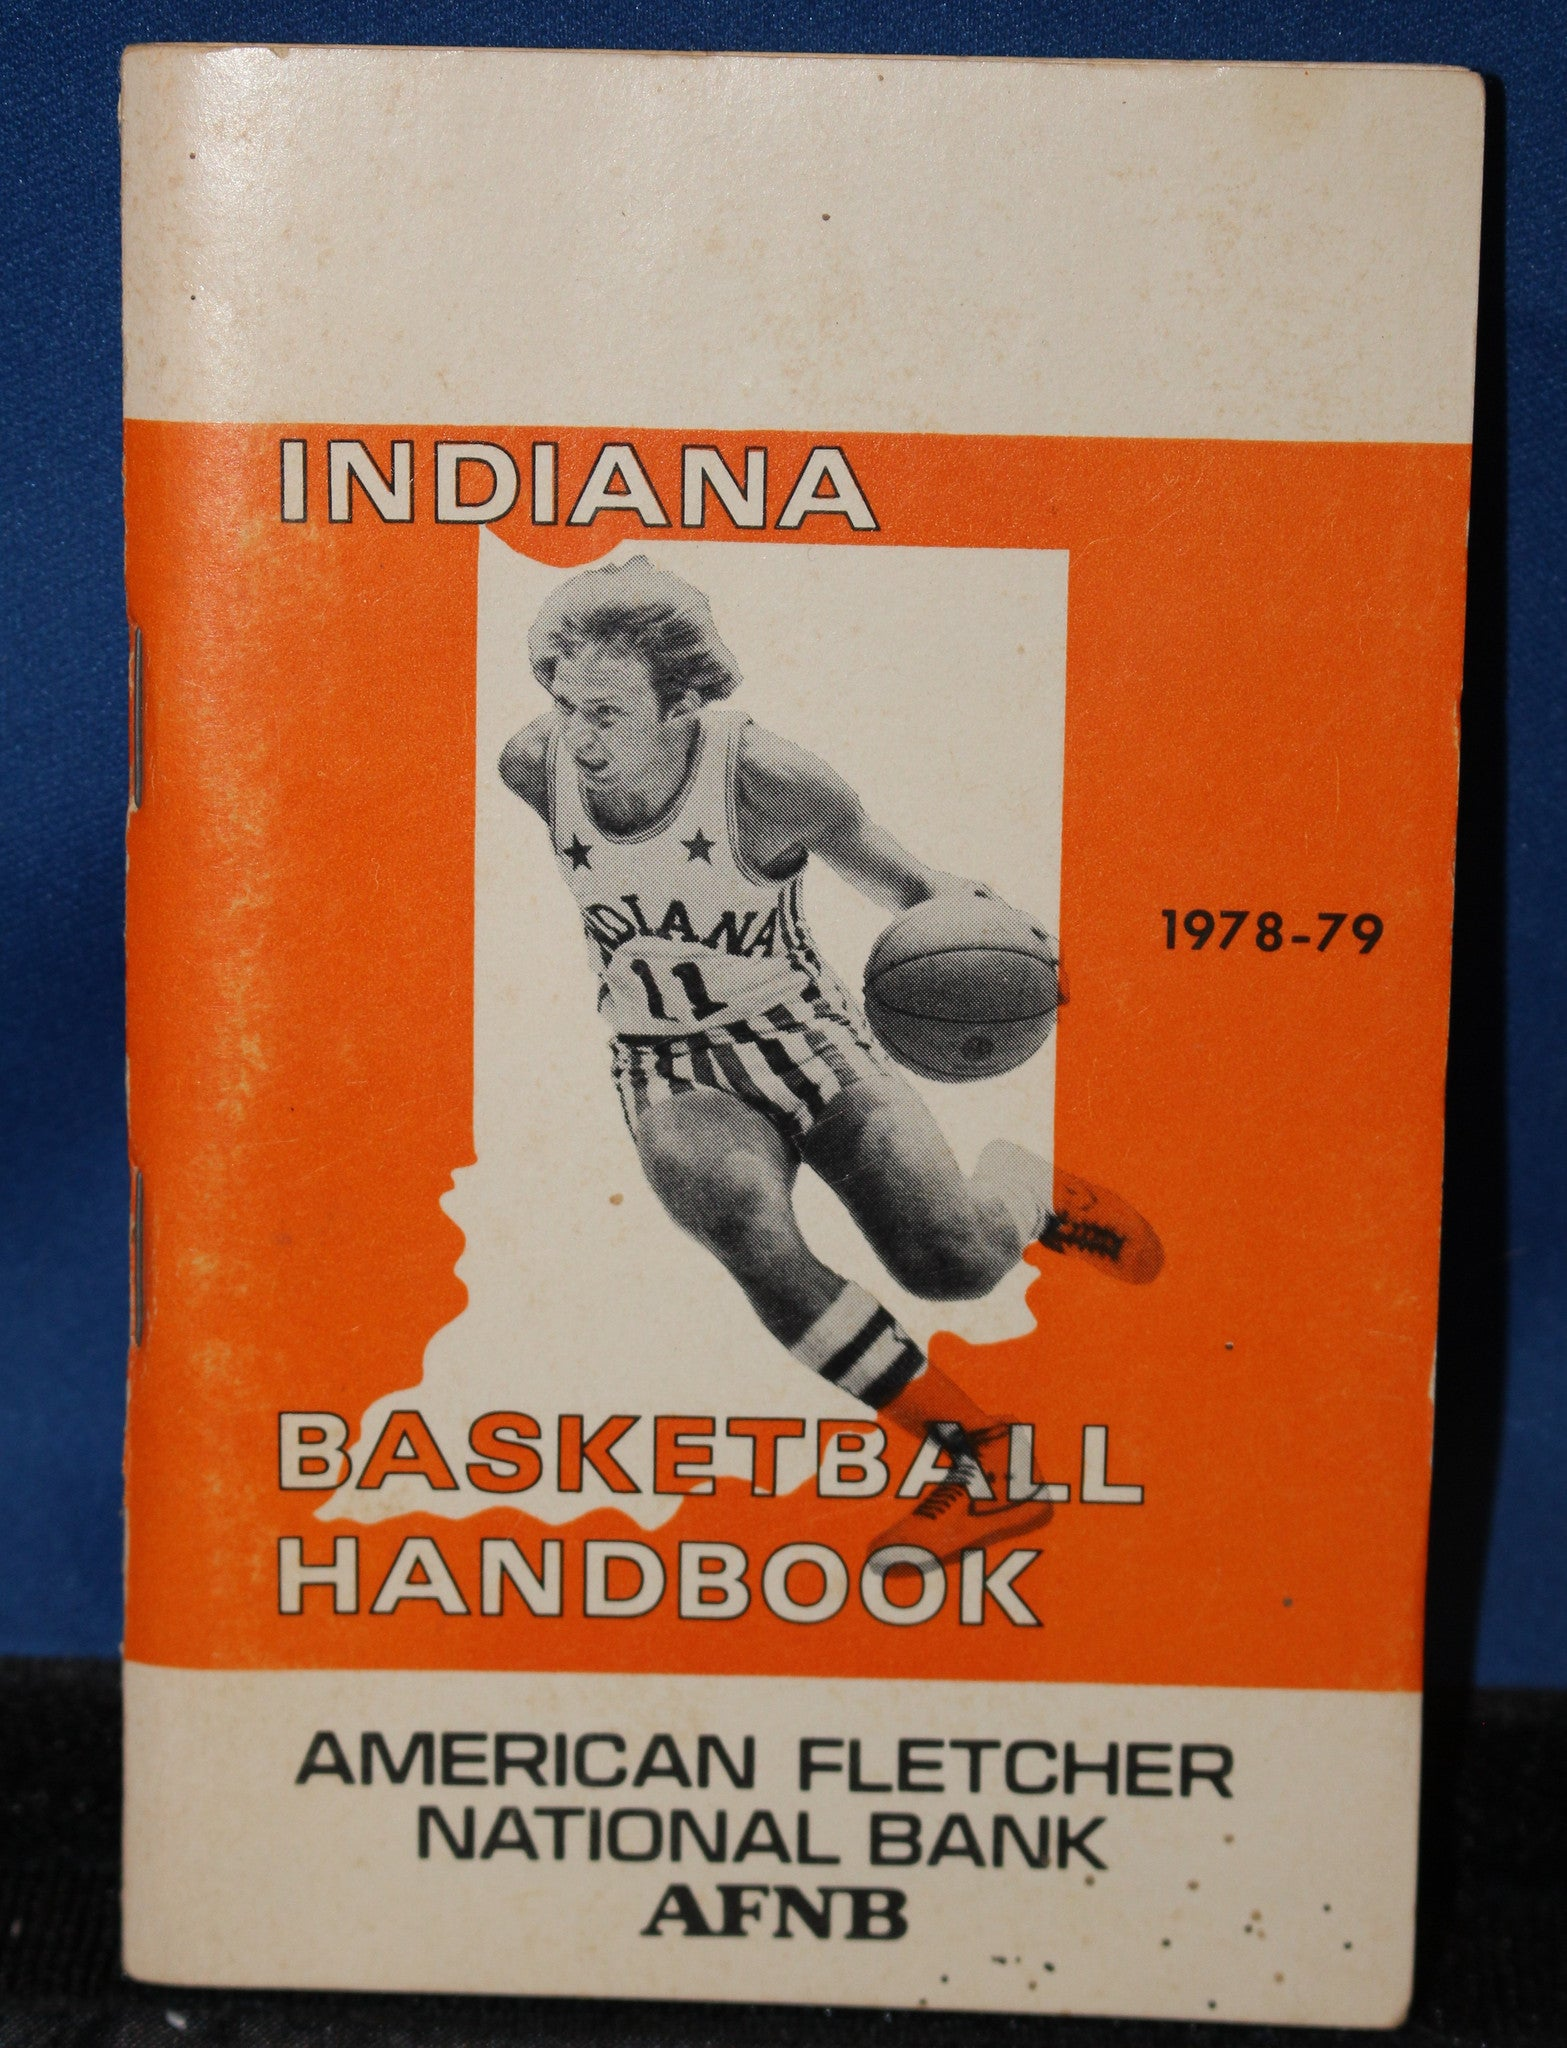 1978-79 Indiana High School Basketball Handbook - Vintage Indy Sports